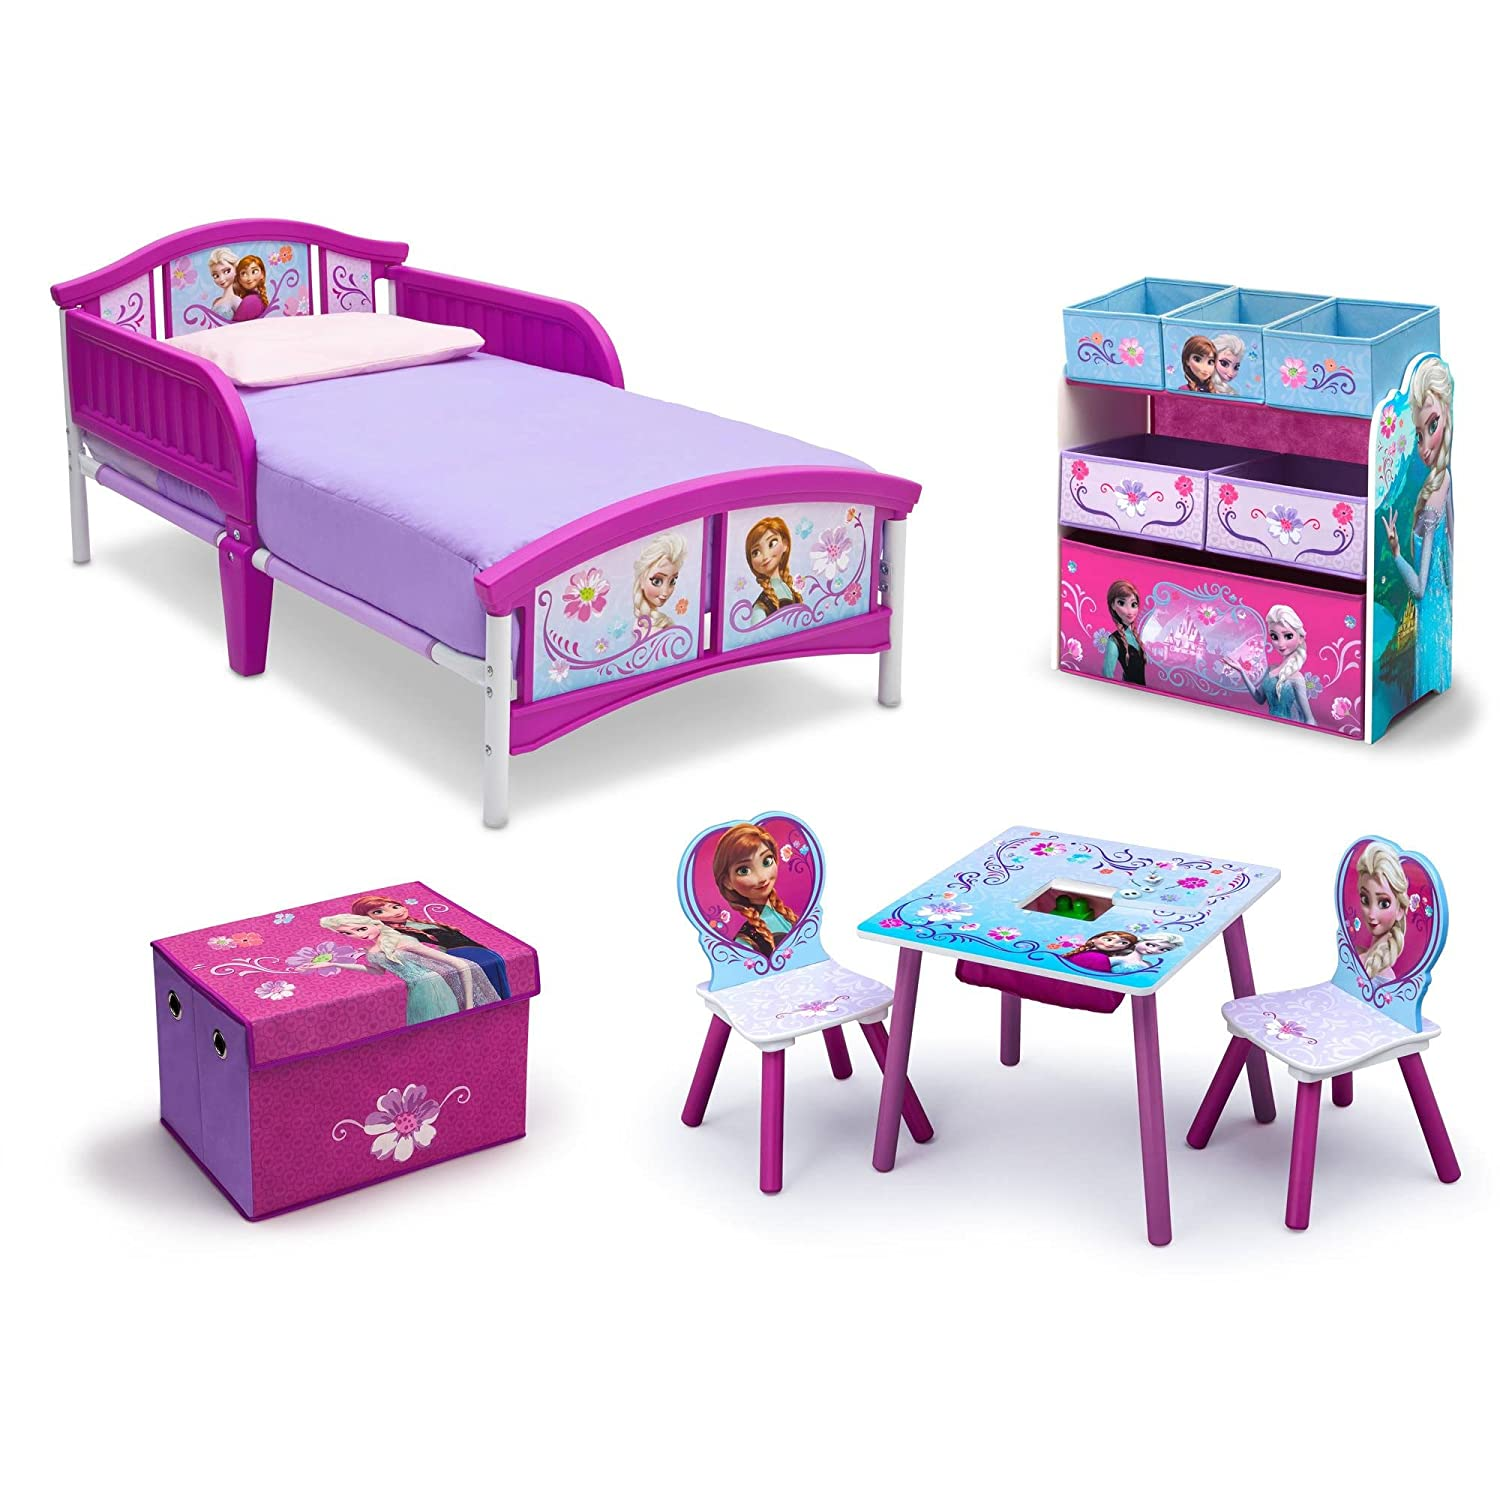 breakfast bedroom new gets rhyoutubecom barbie review morning toy disneycartoys bed elsa a frozen kids and alex furniture